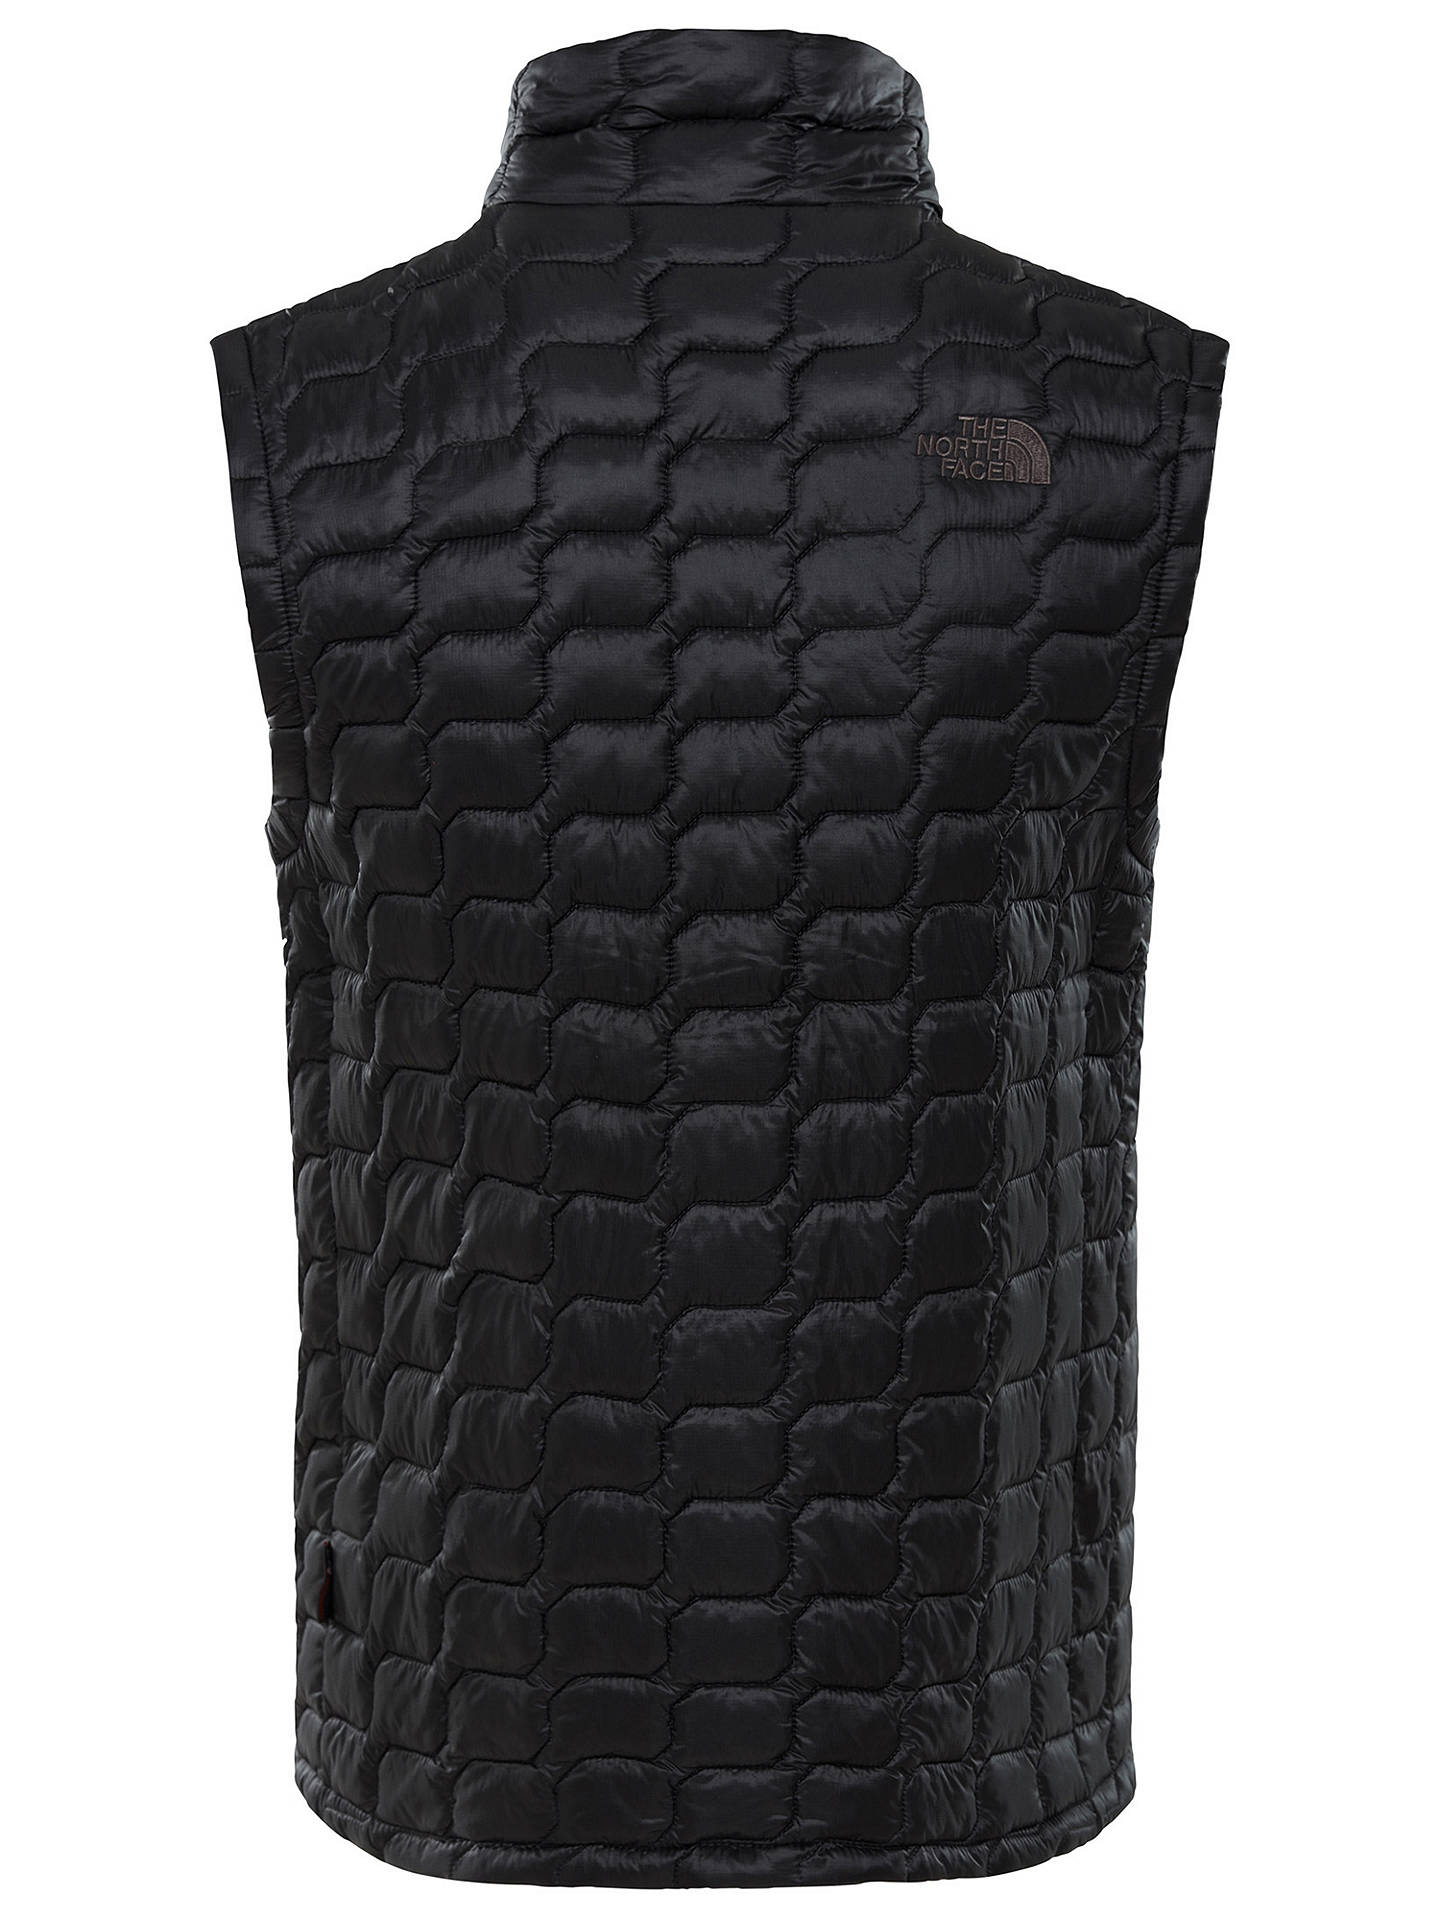 Buy The North Face Thermoball Men's Insulated Gilet, TNF Black, S Online at johnlewis.com